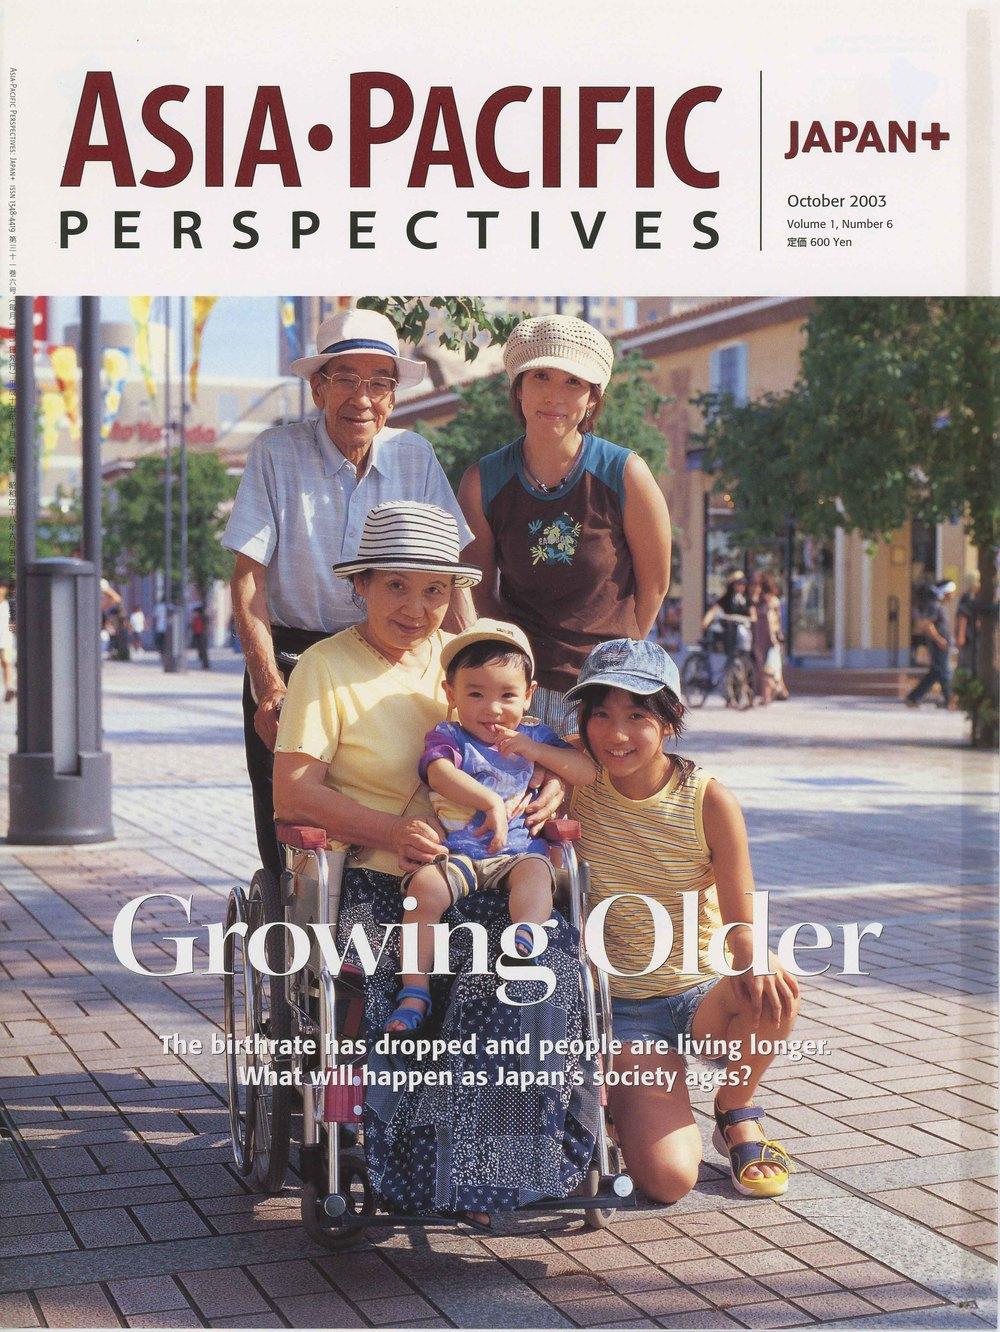 政府広報誌「ASIA PACIFIC PERSPECTIVES JAPAN+」表紙